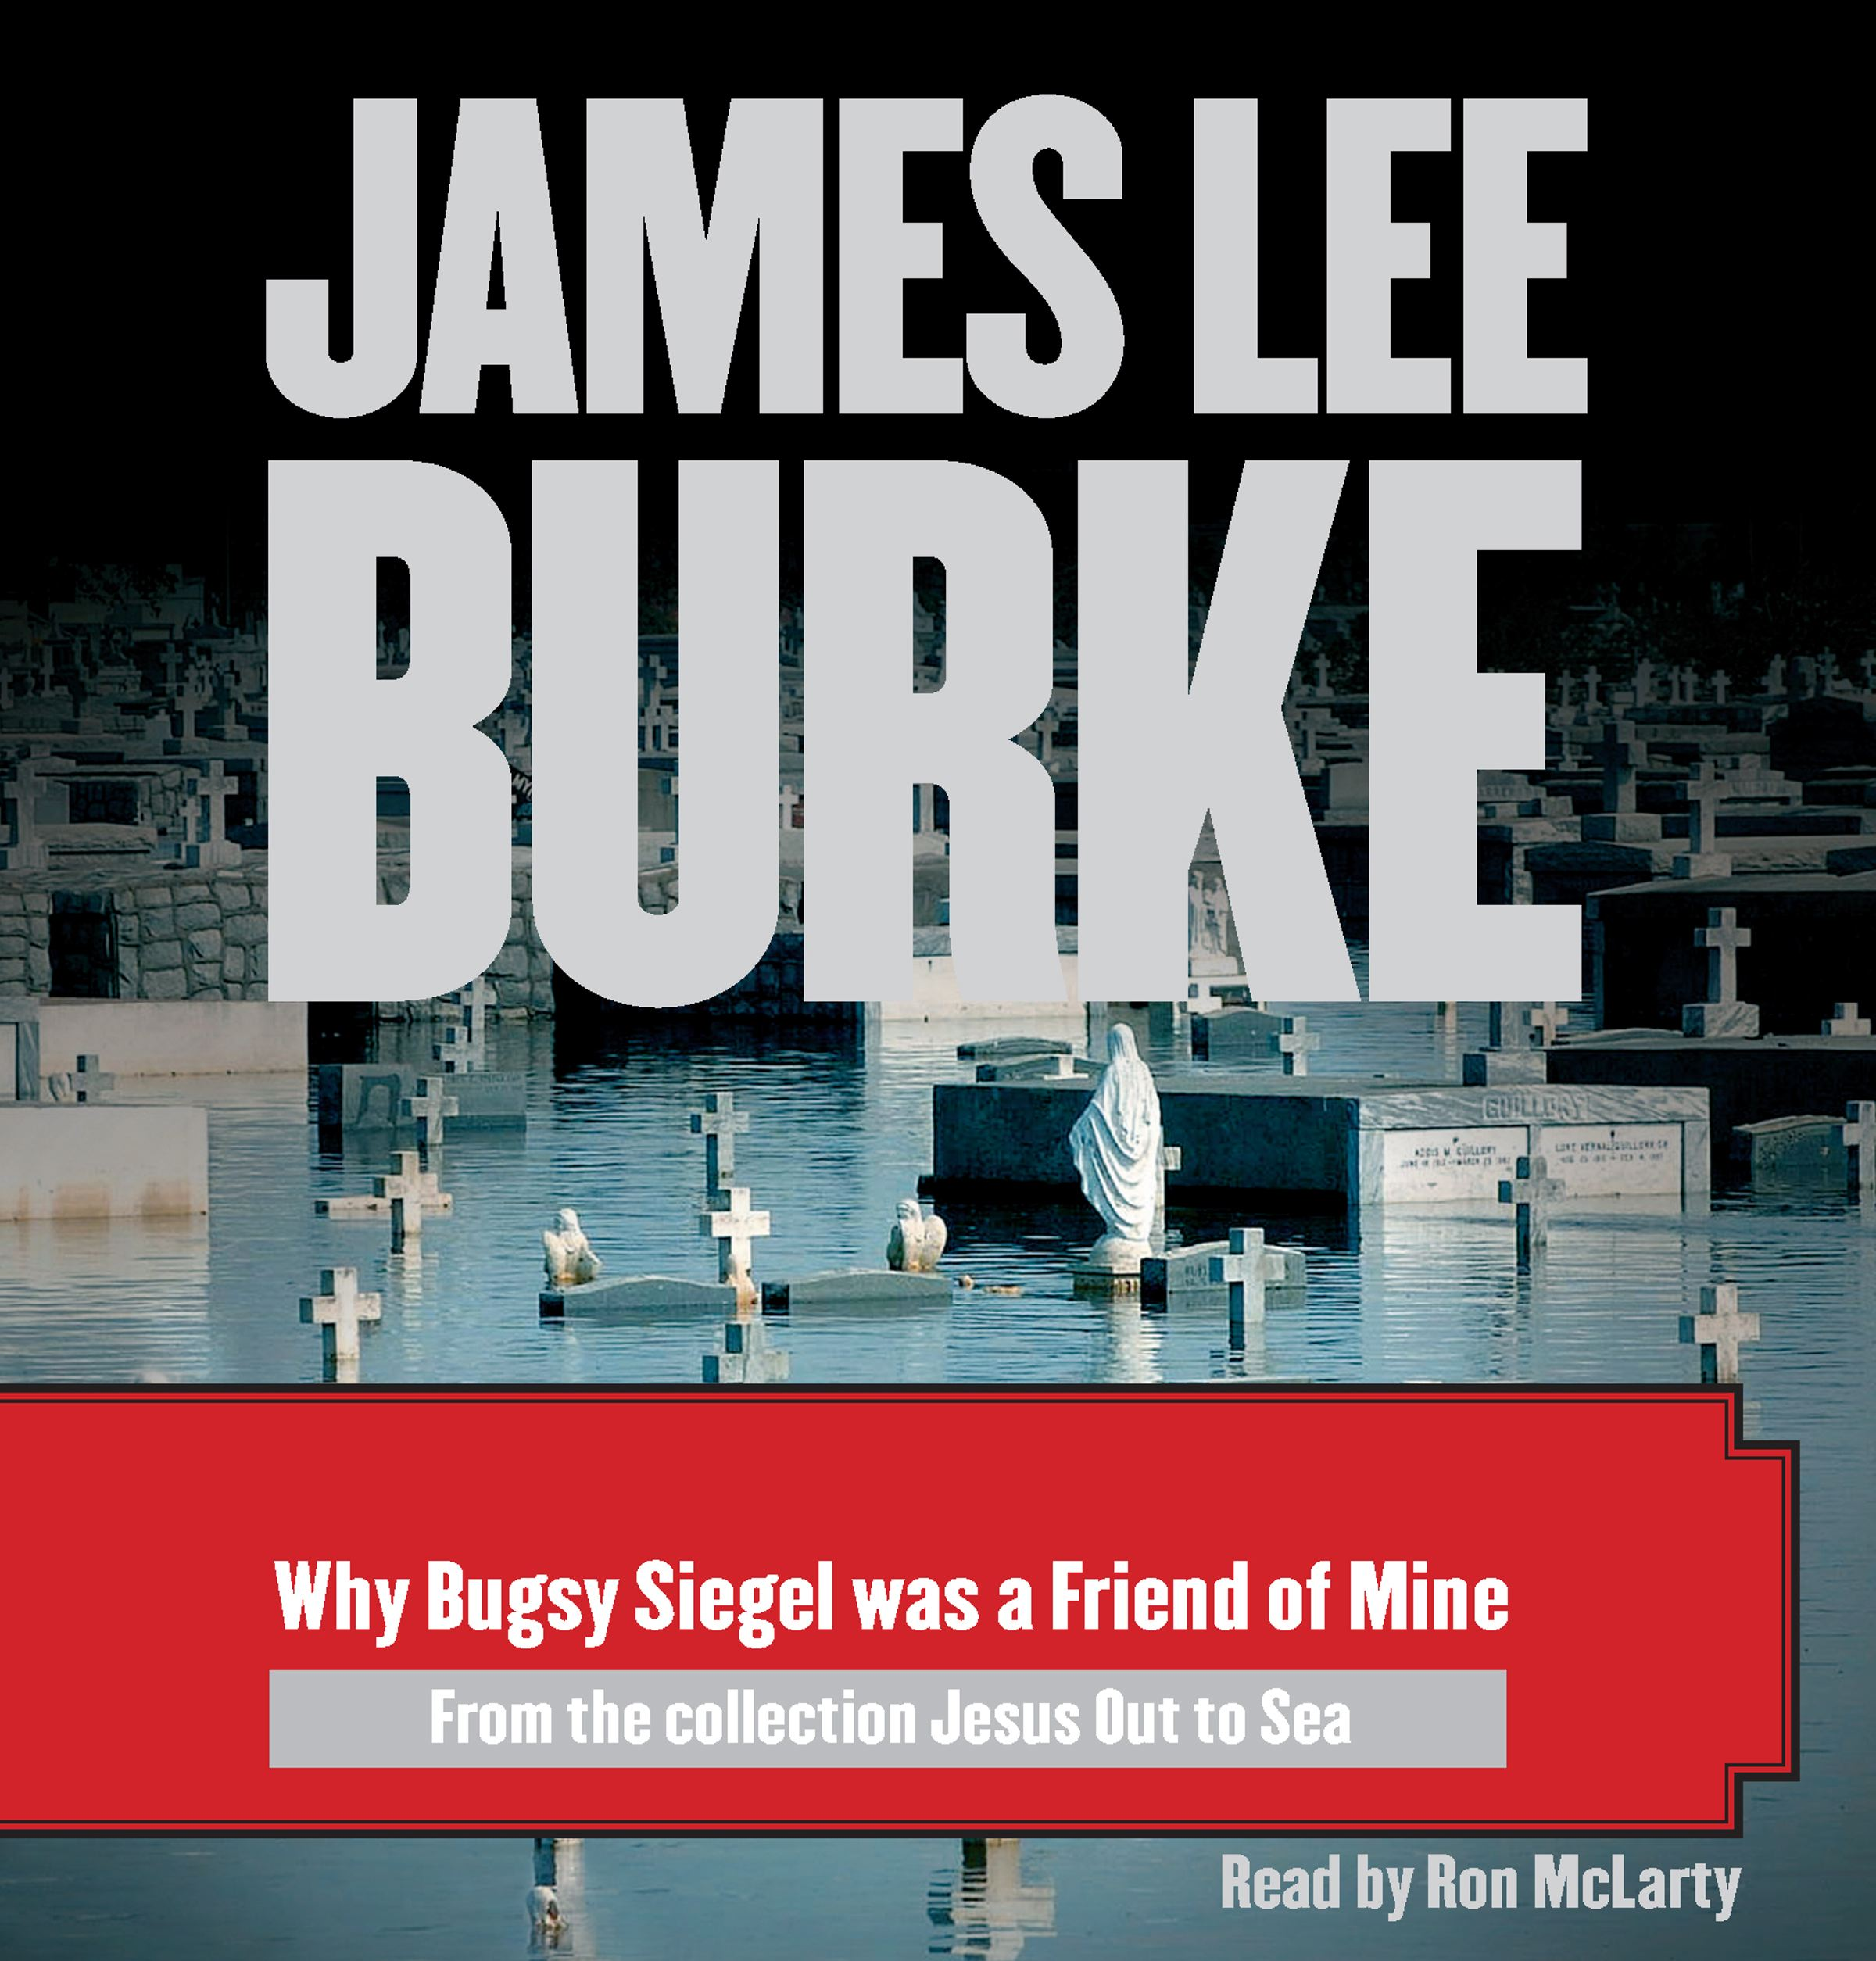 Why-bugsy-siegel-was-a-friend-of-mine-9780743571500_hr